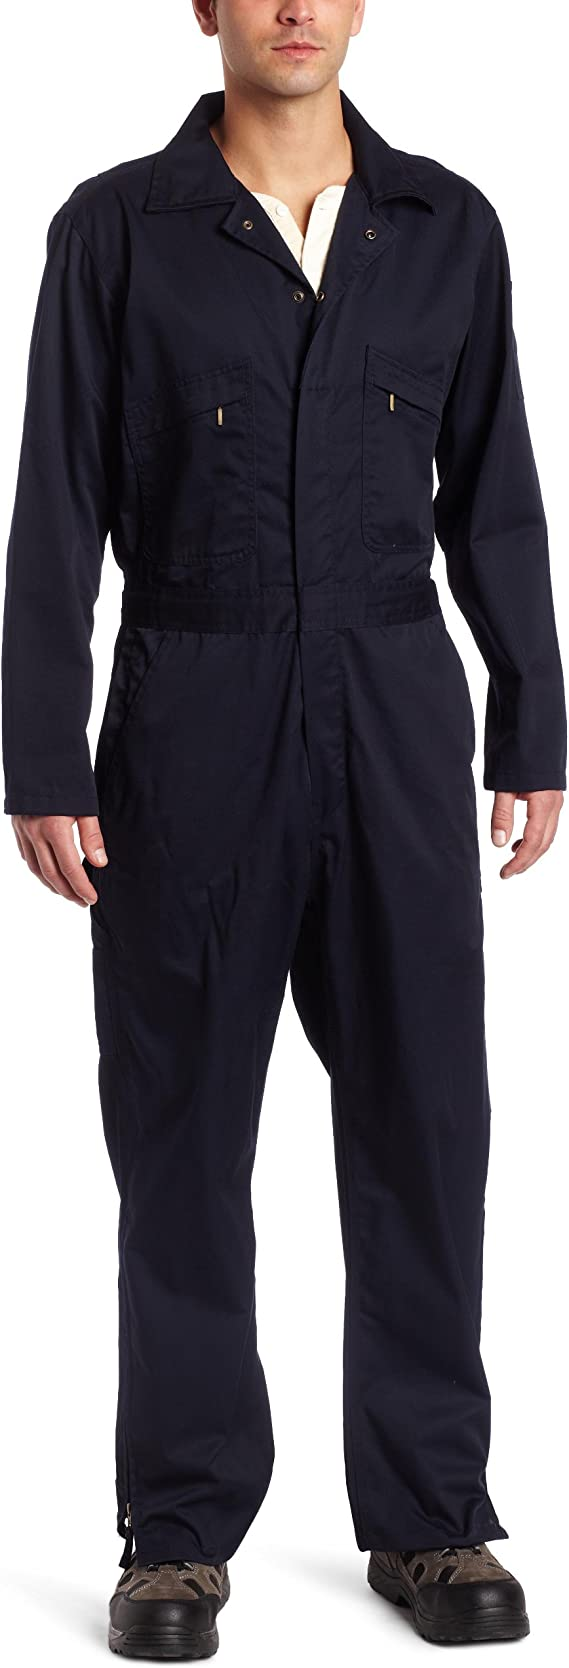 Navy Key Apparel Mens Deluxe Unlined Long Sleeve Coverall Large-Regular